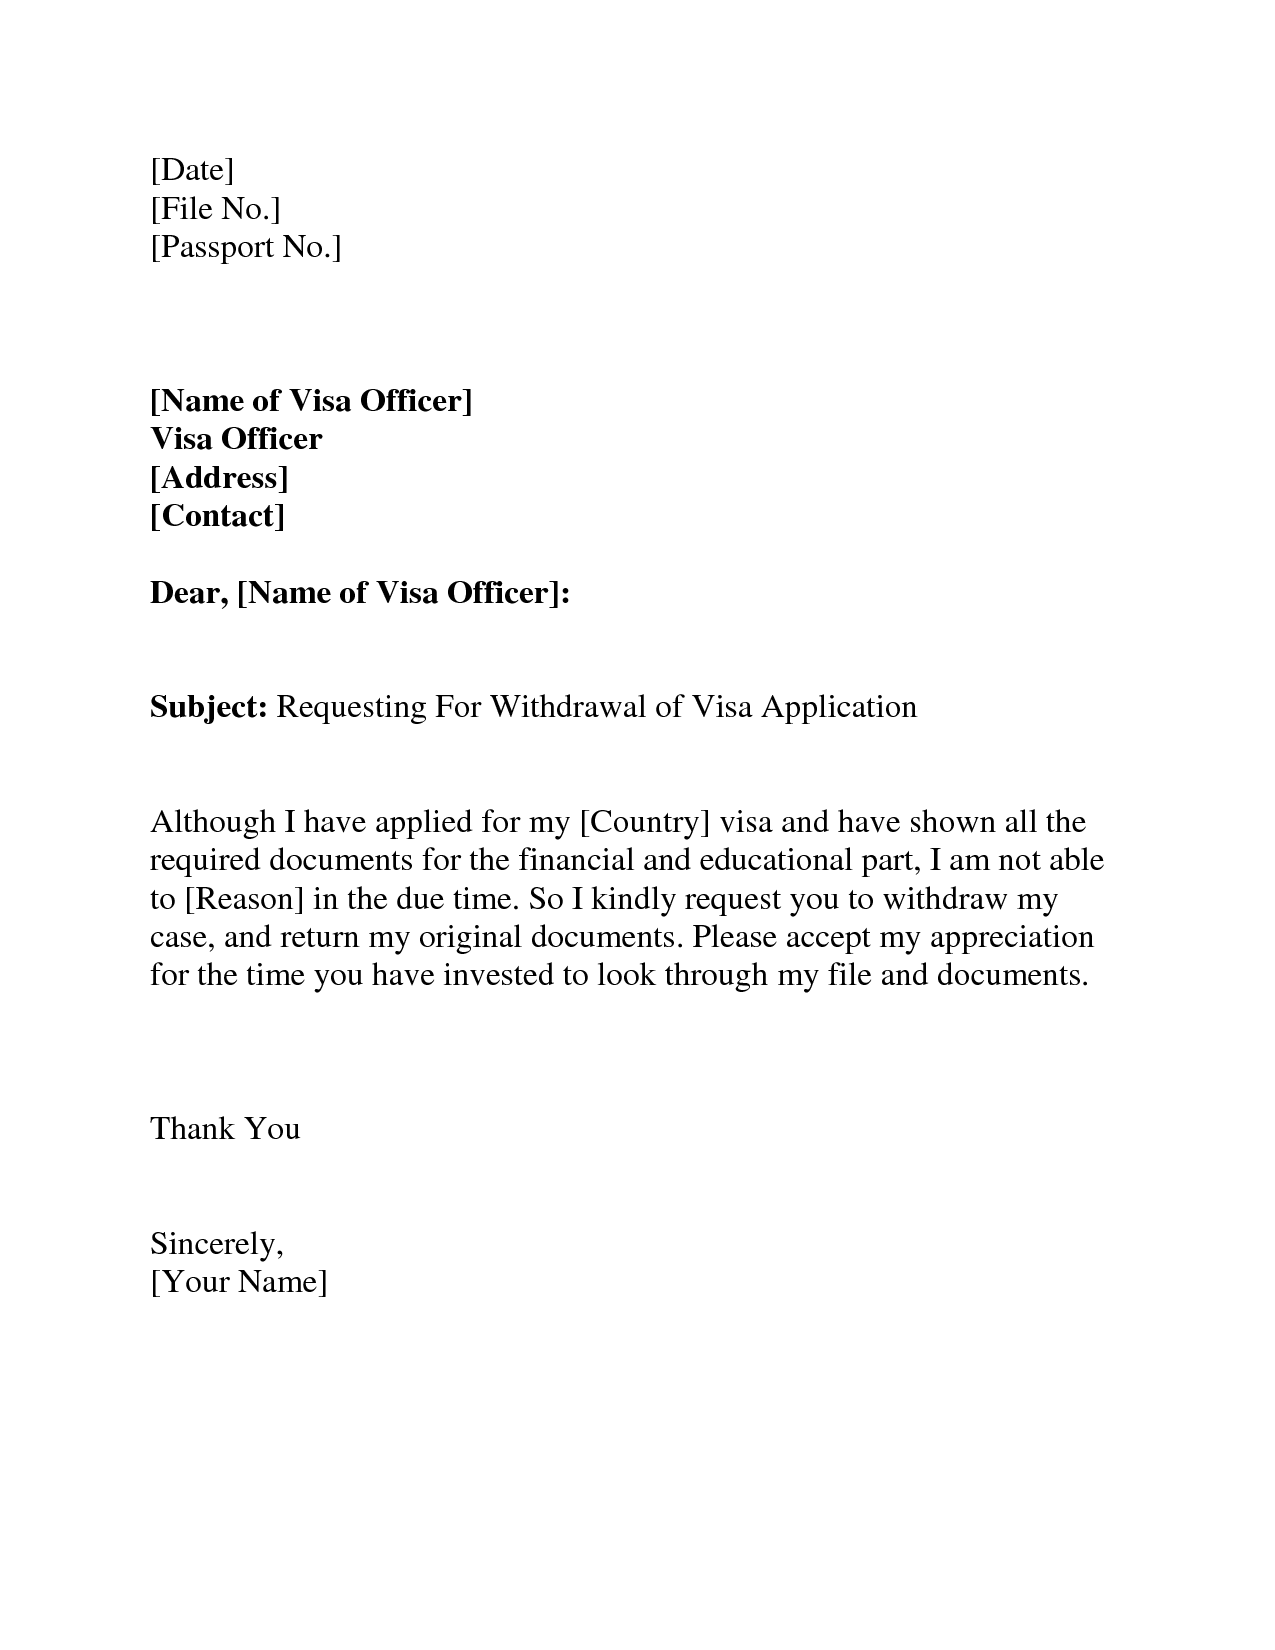 Visa withdrawal letter request letter format letter and emailvisa visa withdrawal letter request letter format letter and emailvisa invitation letter to a friend example application letter sample spiritdancerdesigns Choice Image